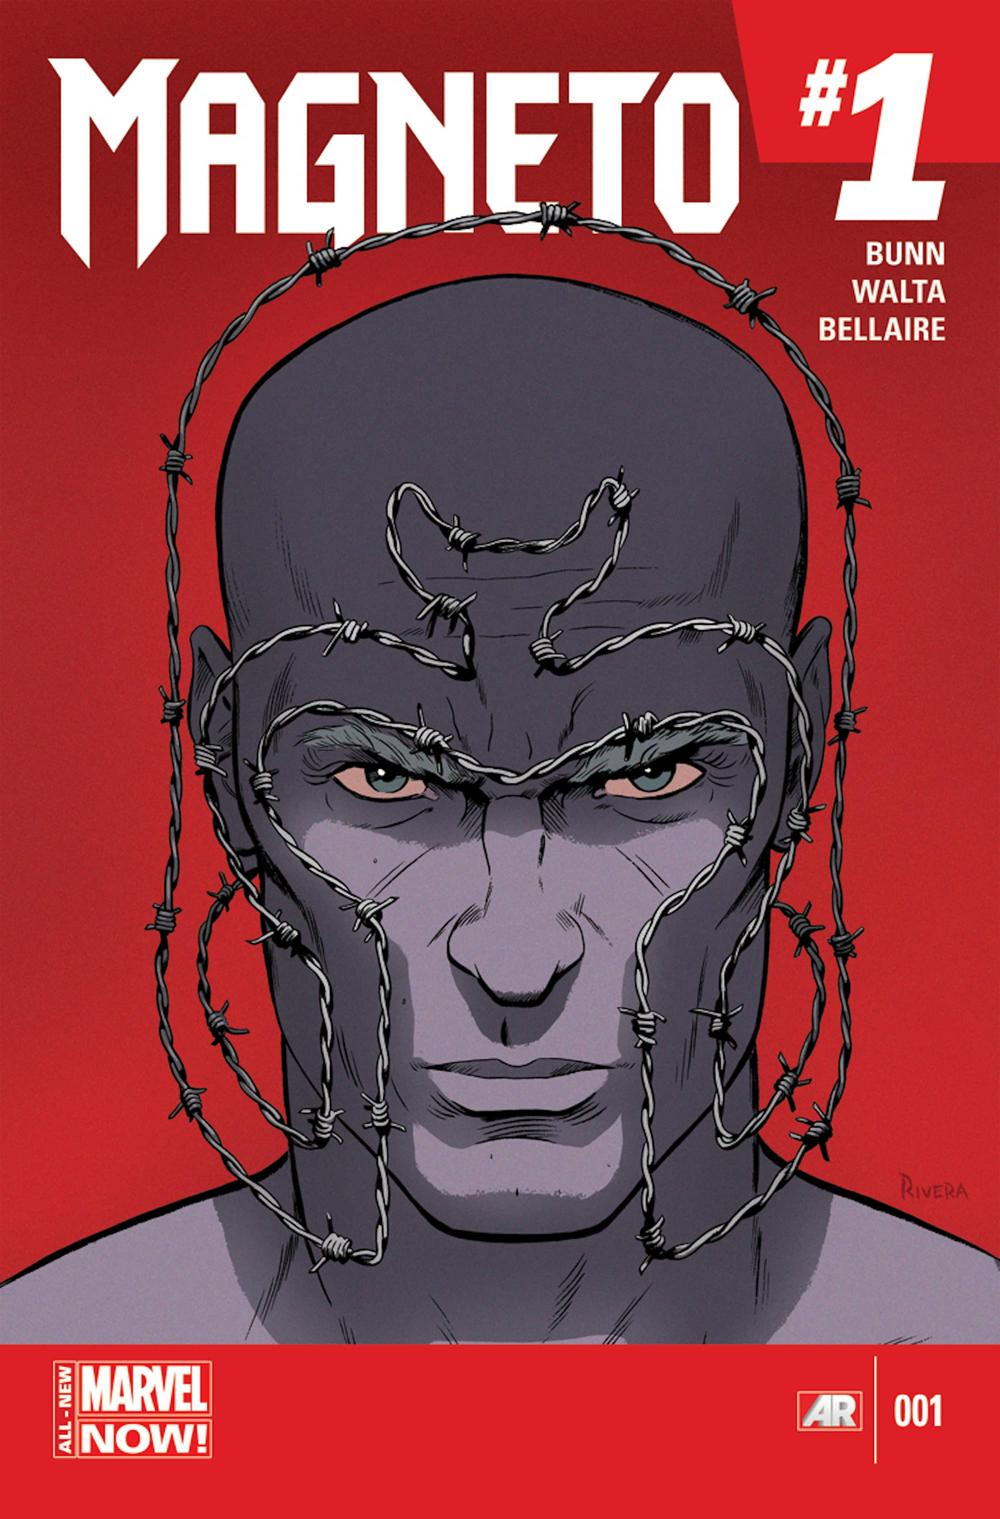 MAGNETO (2014) #1 cover by Paolo Rivera